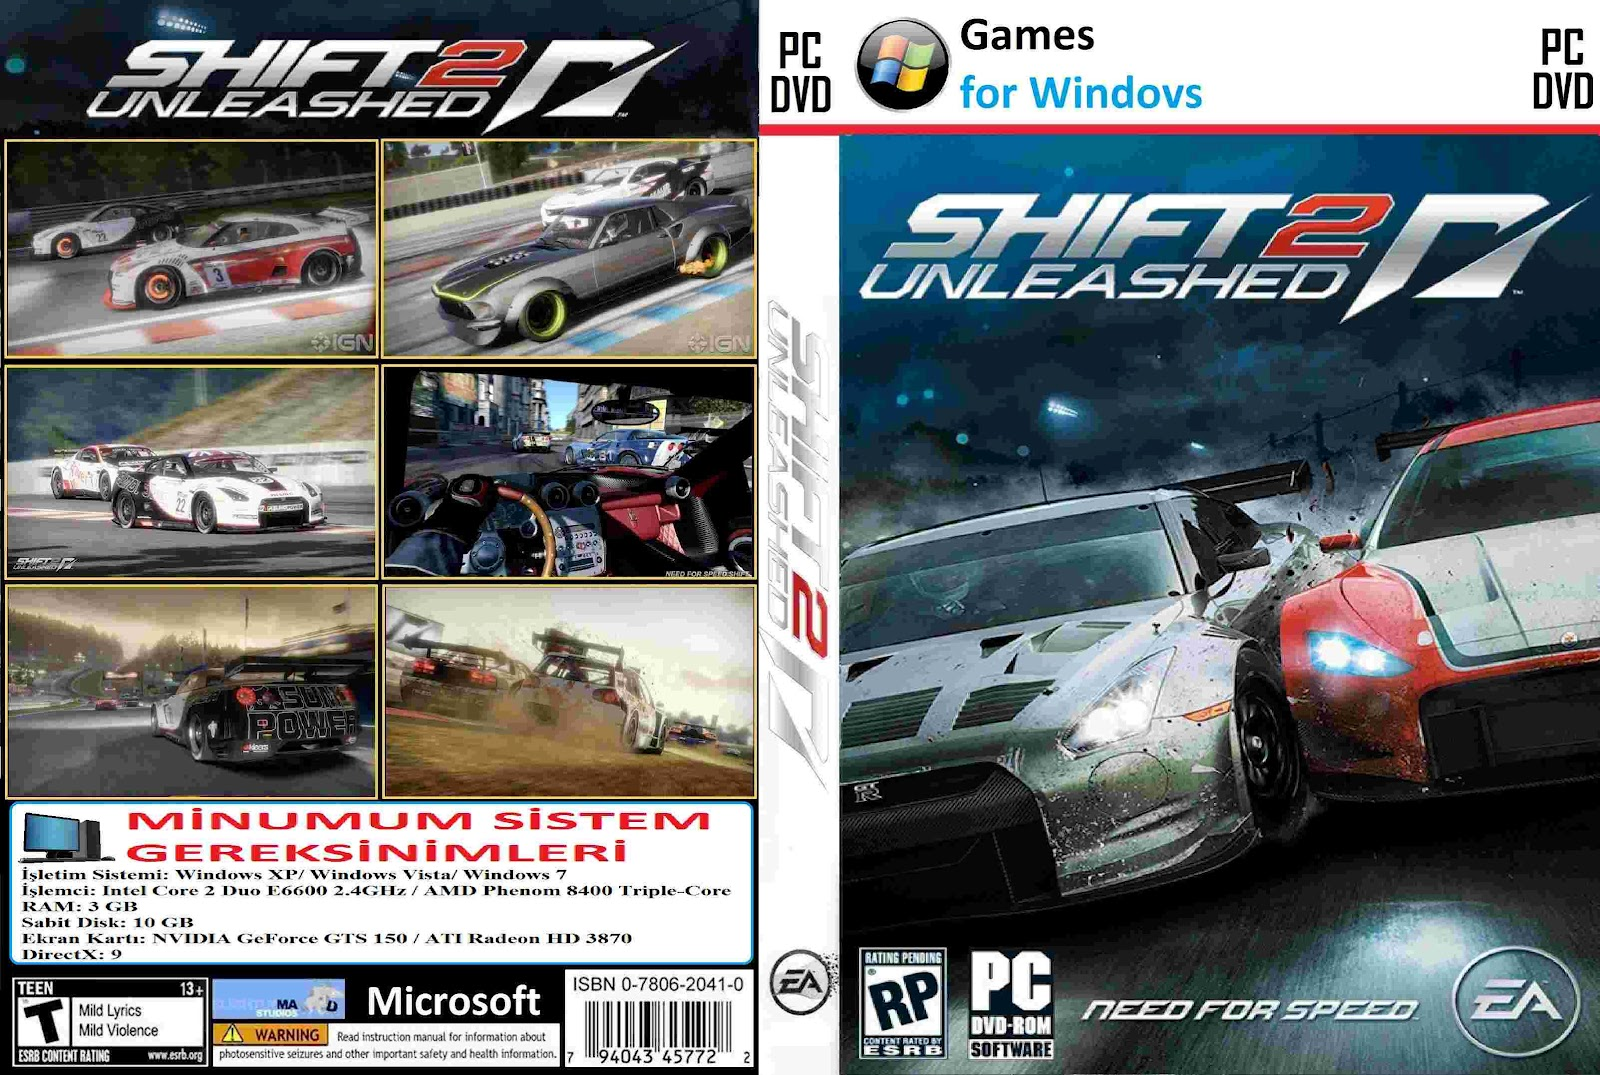 Скачать торрент need for speed shift 2 unleashed mods dlc.